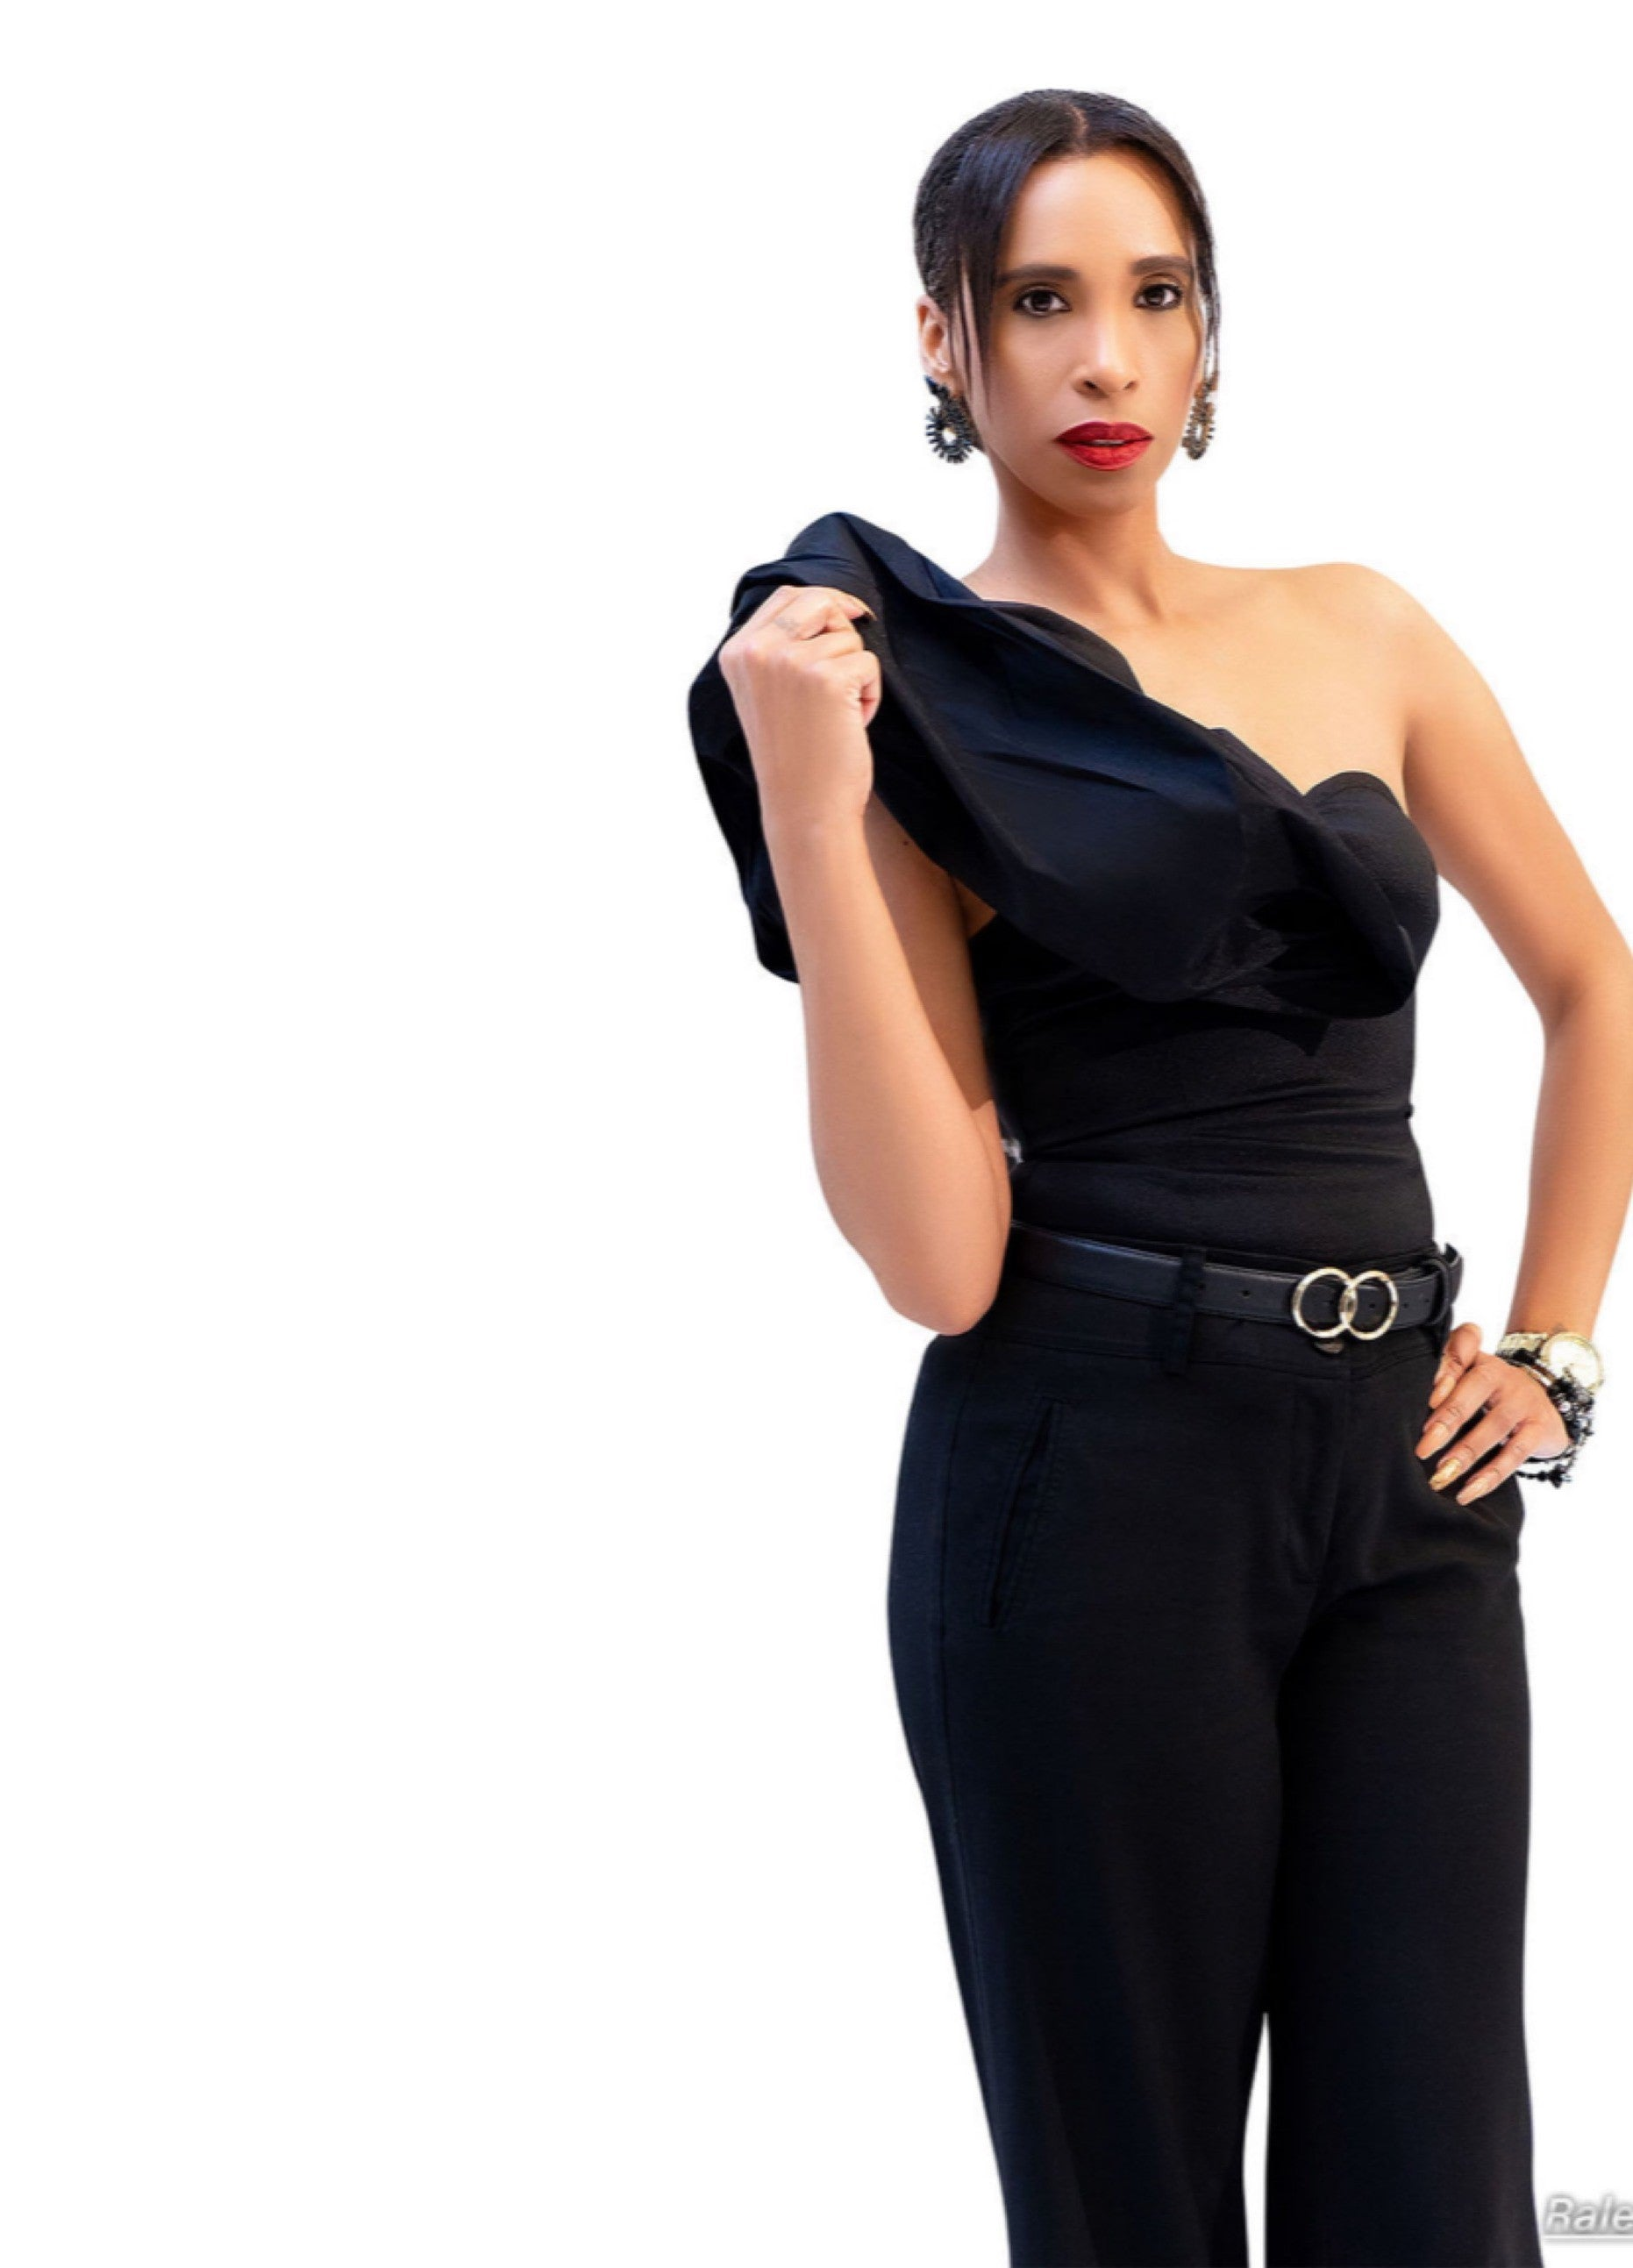 Anetra Byrd in a black outfit with white background